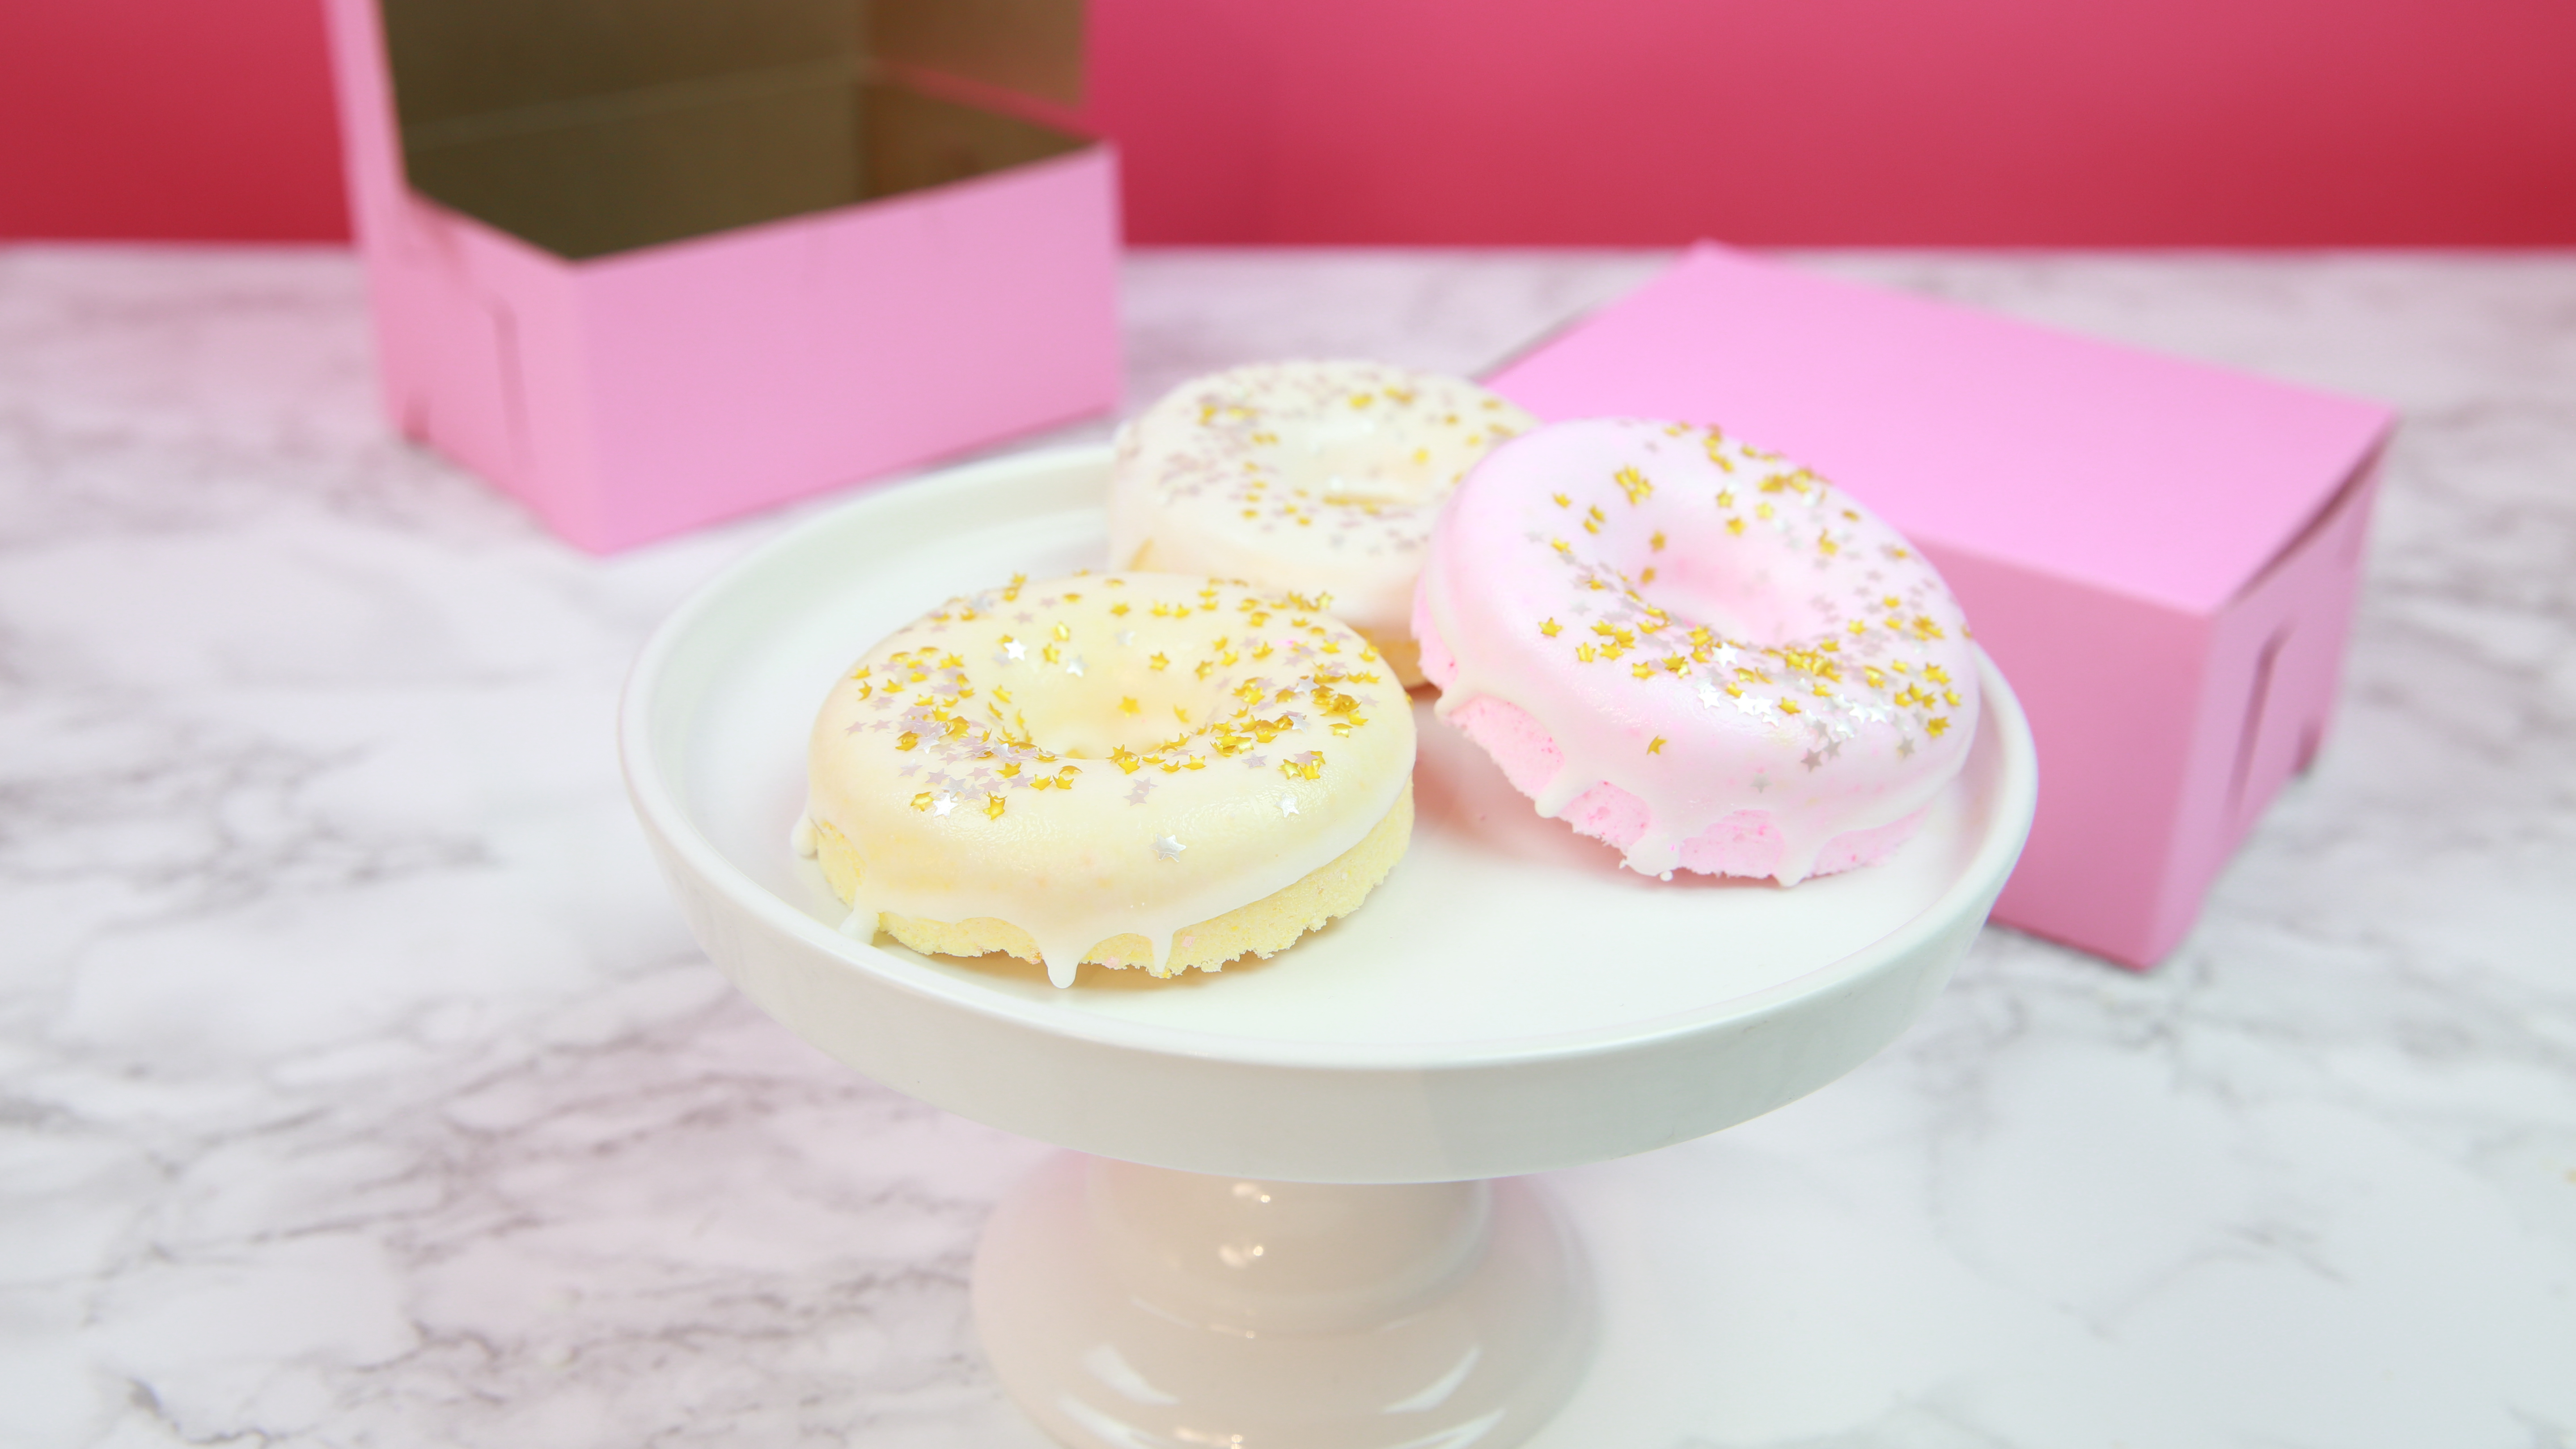 These DIY donut bath bombs are so potent you'll be immediately hungry and relaxed